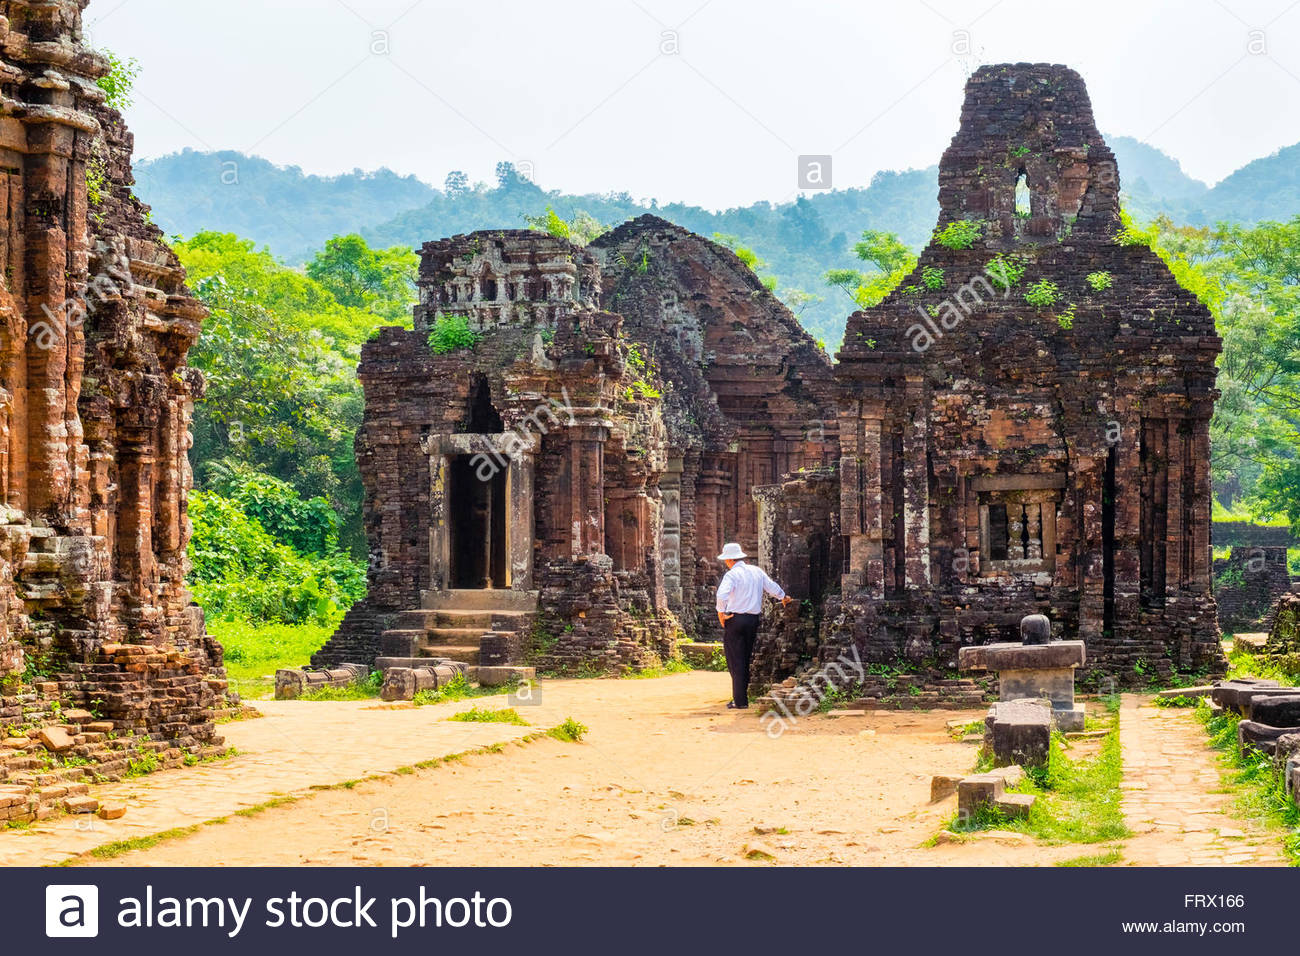 A local Vietnamese guide at My Son ruins Cham temple site, Duy Xuyen District, Quang Nam Province, Vietnam - Stock Image